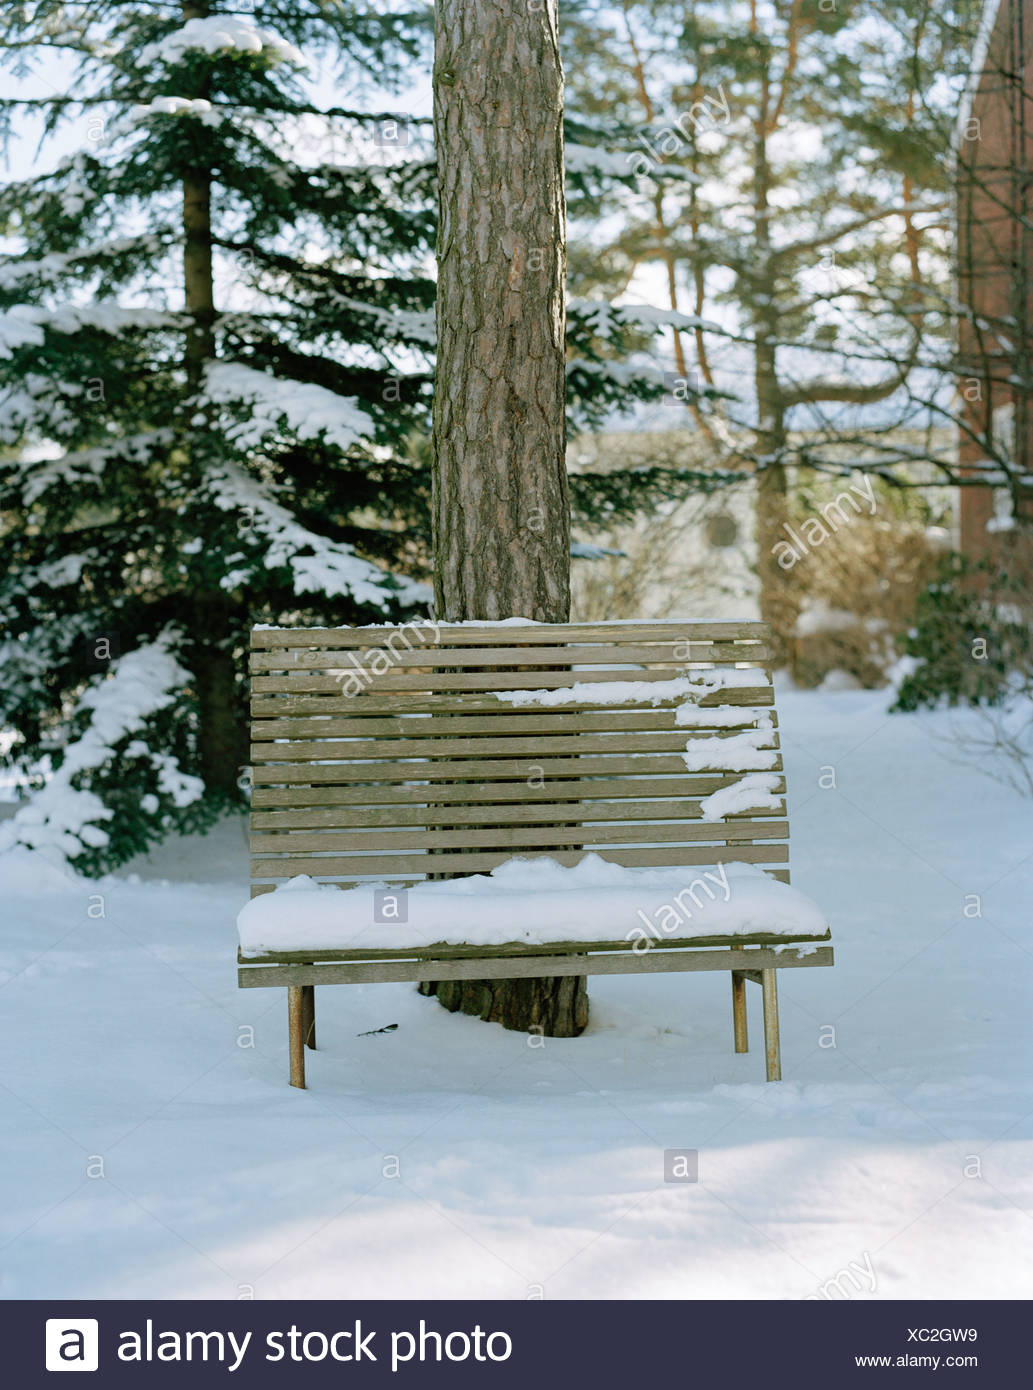 A bench covered wih snow, Stockholm, Sweden. - Stock Image